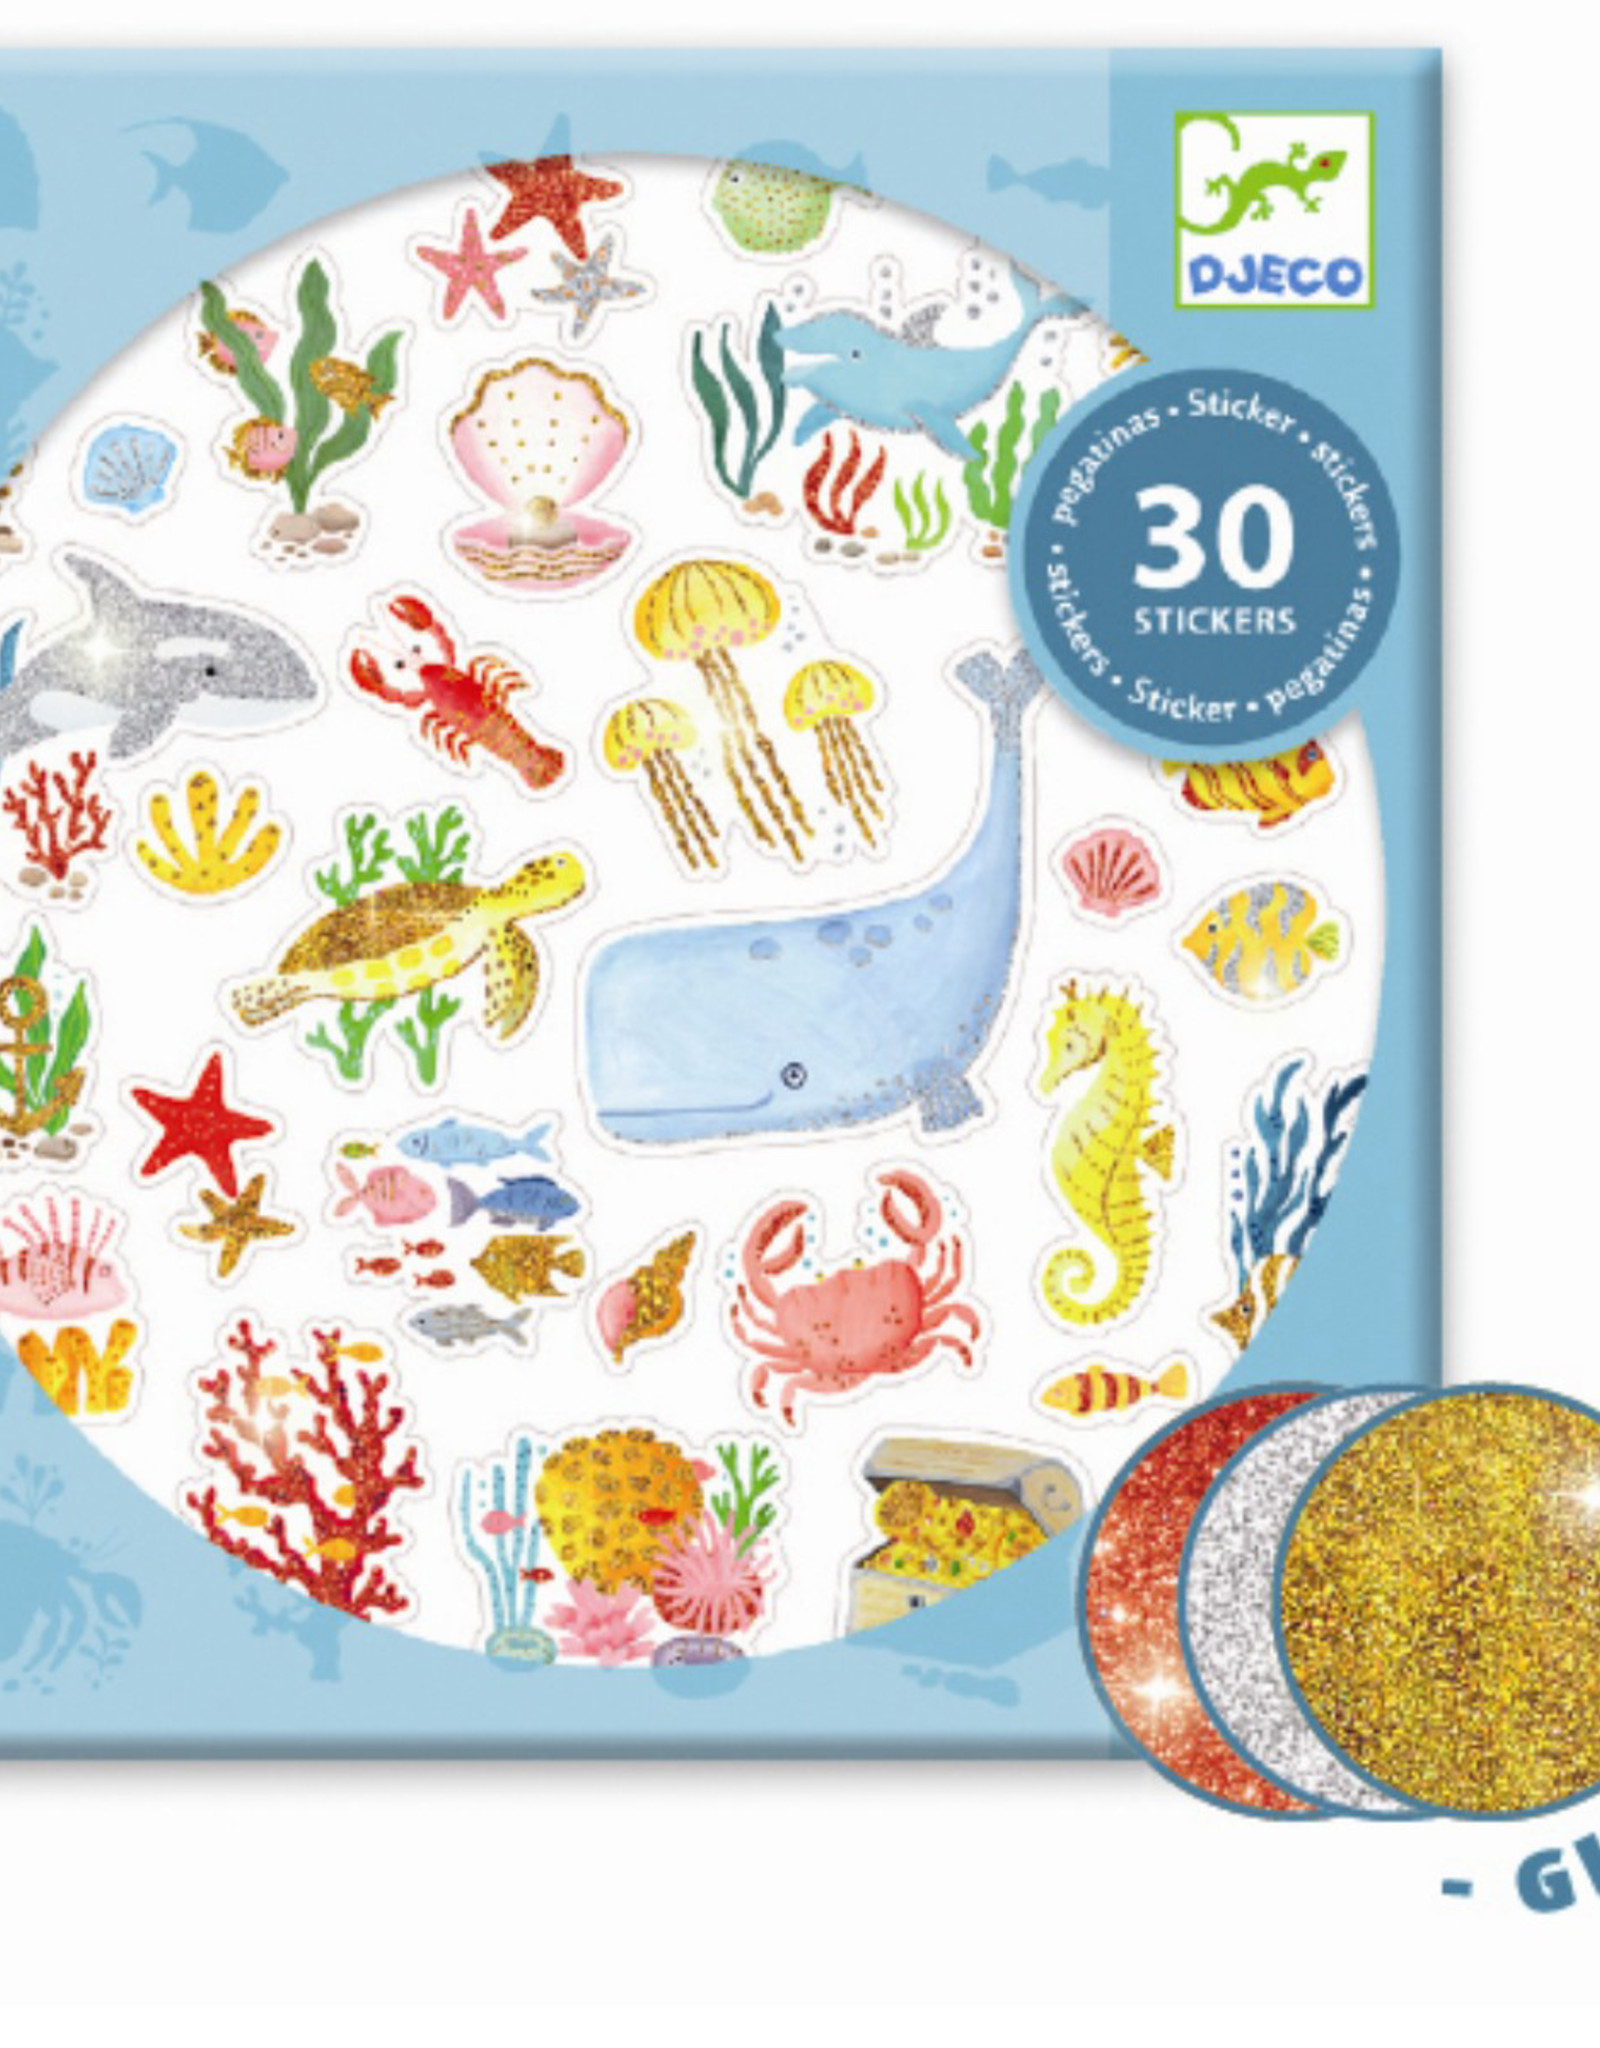 Djeco Stickers Aqua Dream